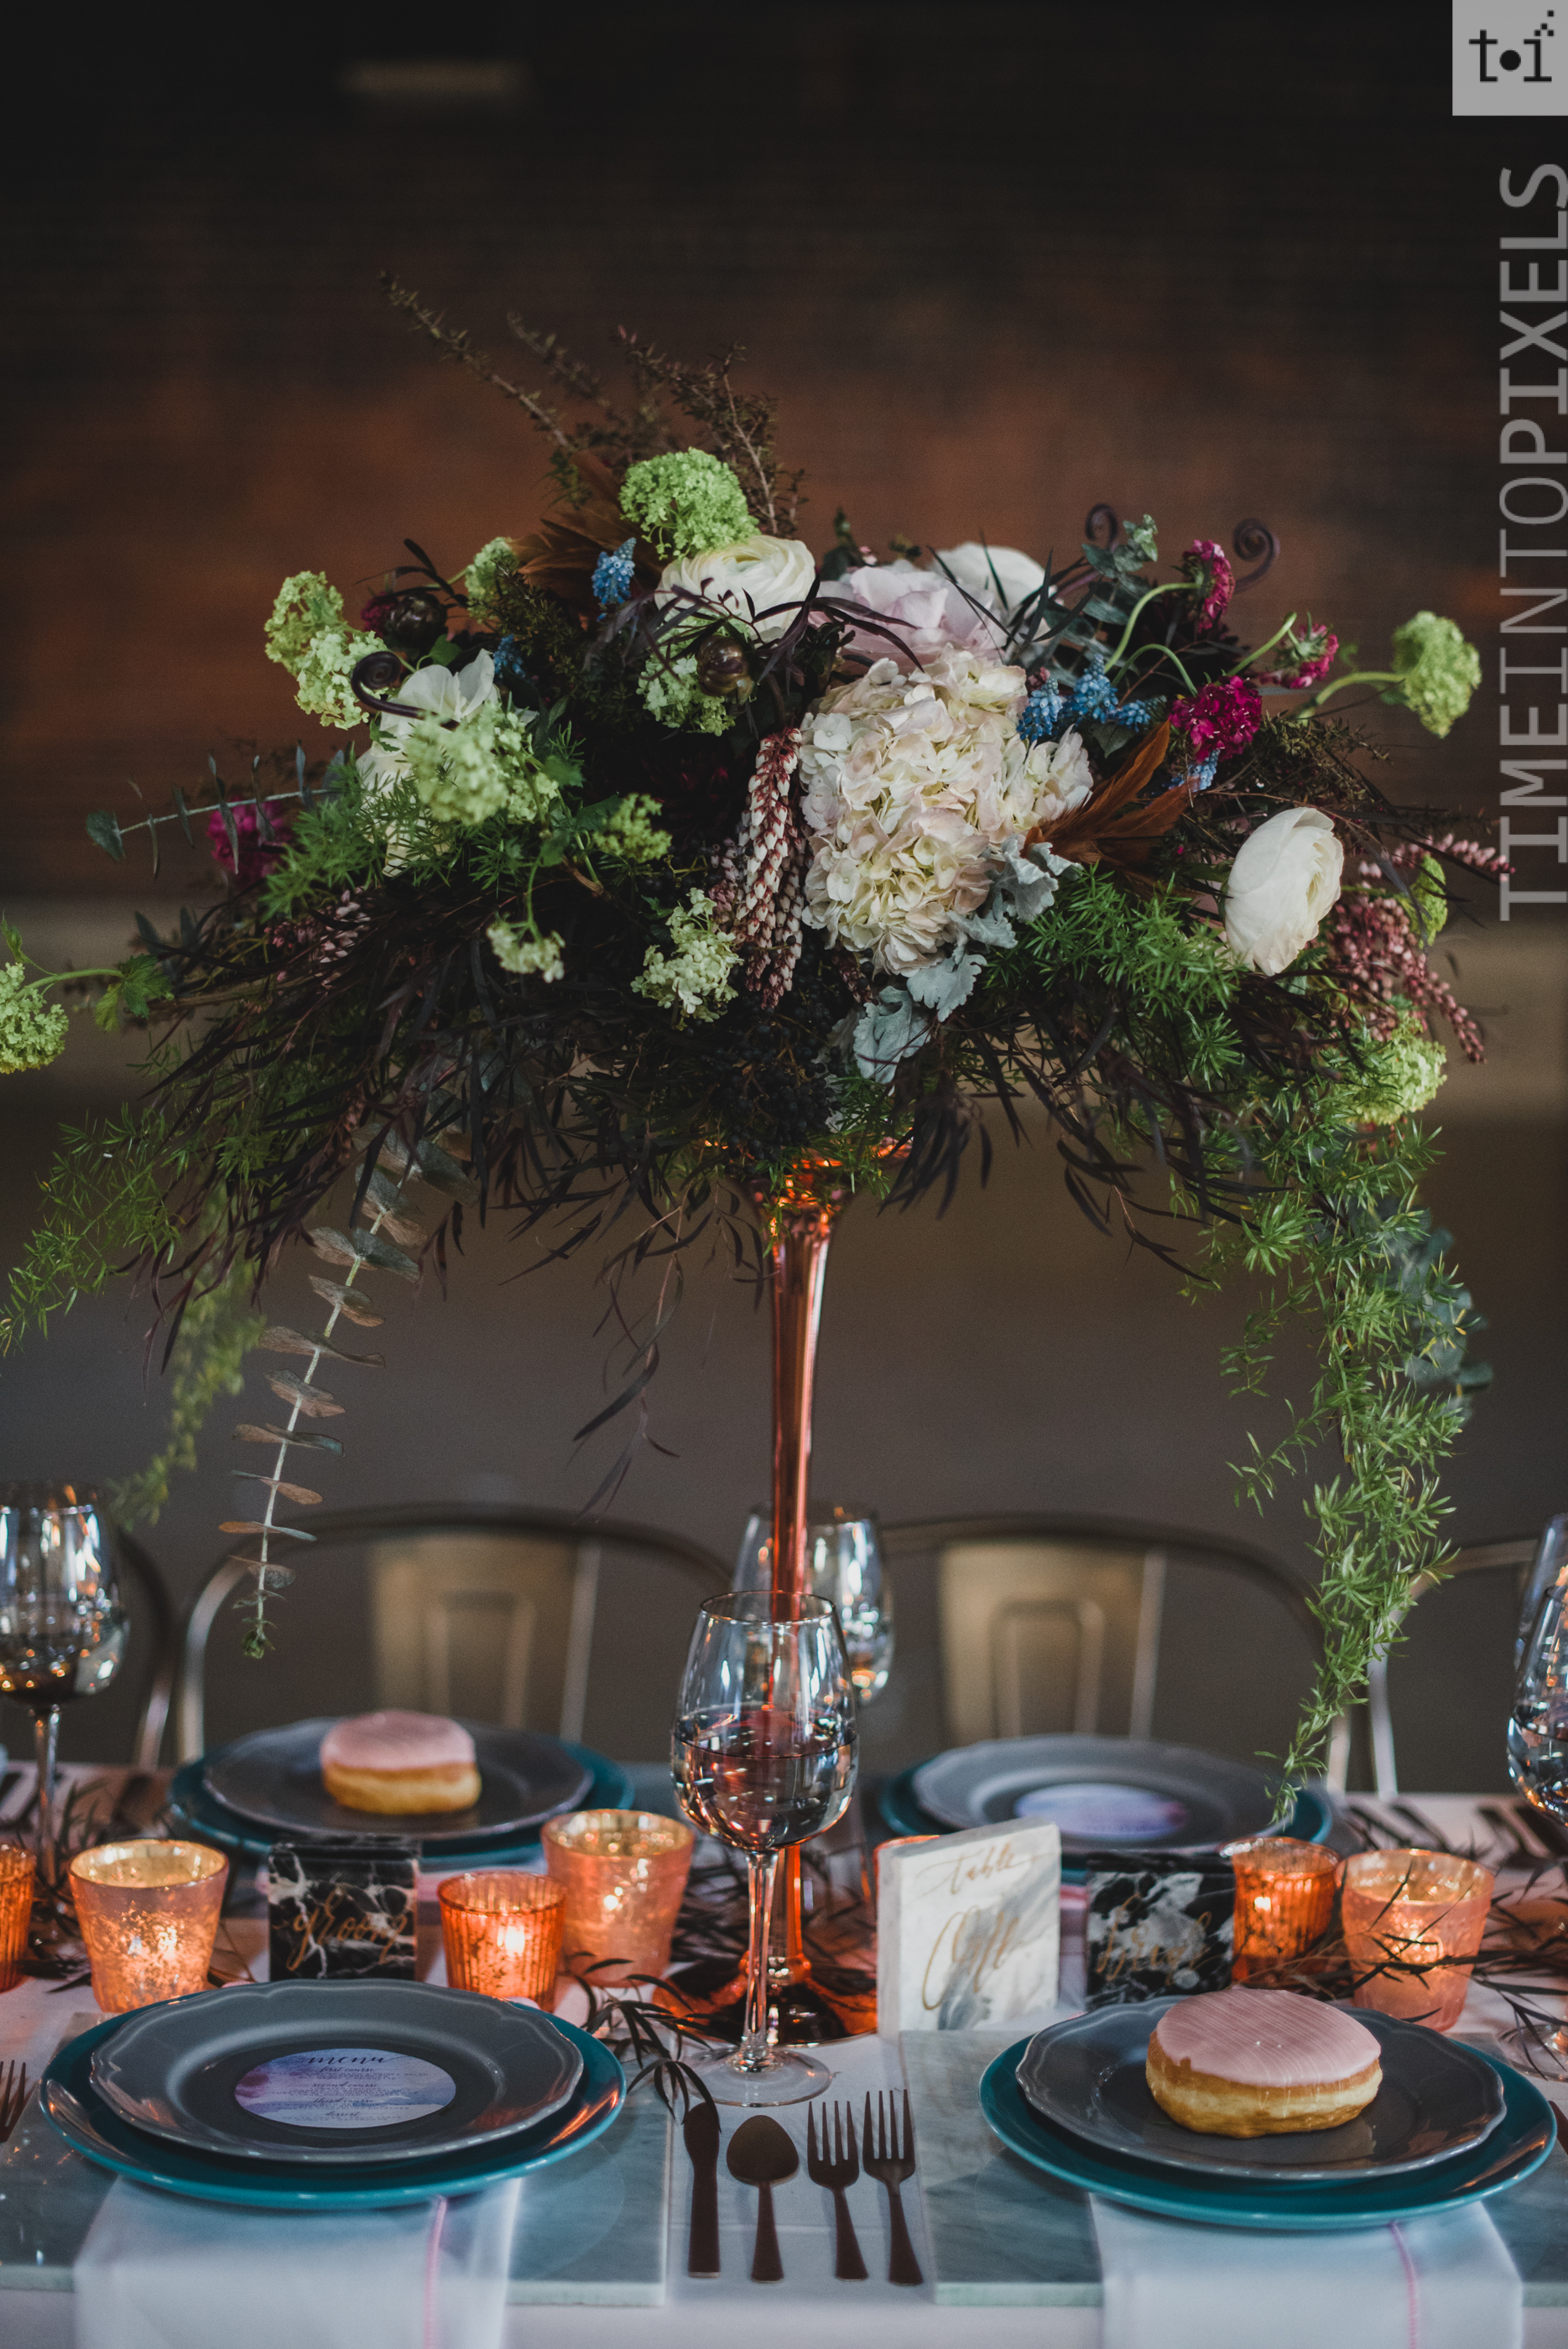 Time Into Pixels Photography-Jessica Wonders Events-Styled Shoot  021.jpg